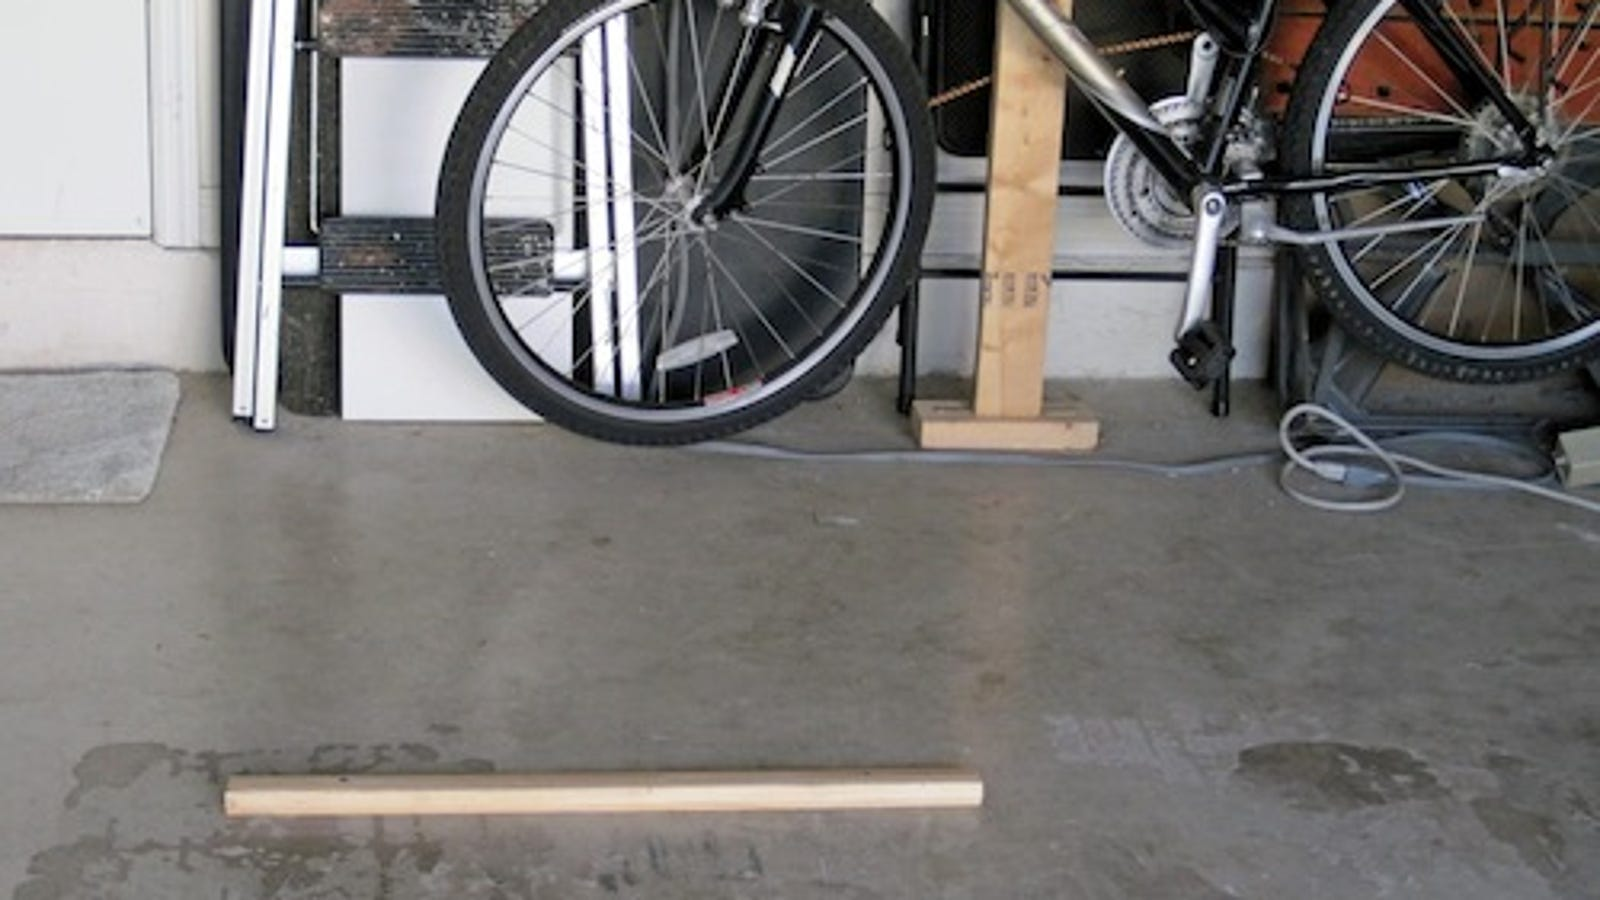 Diy garage parking bumper keeps you from knocking over the bicycles solutioingenieria Gallery